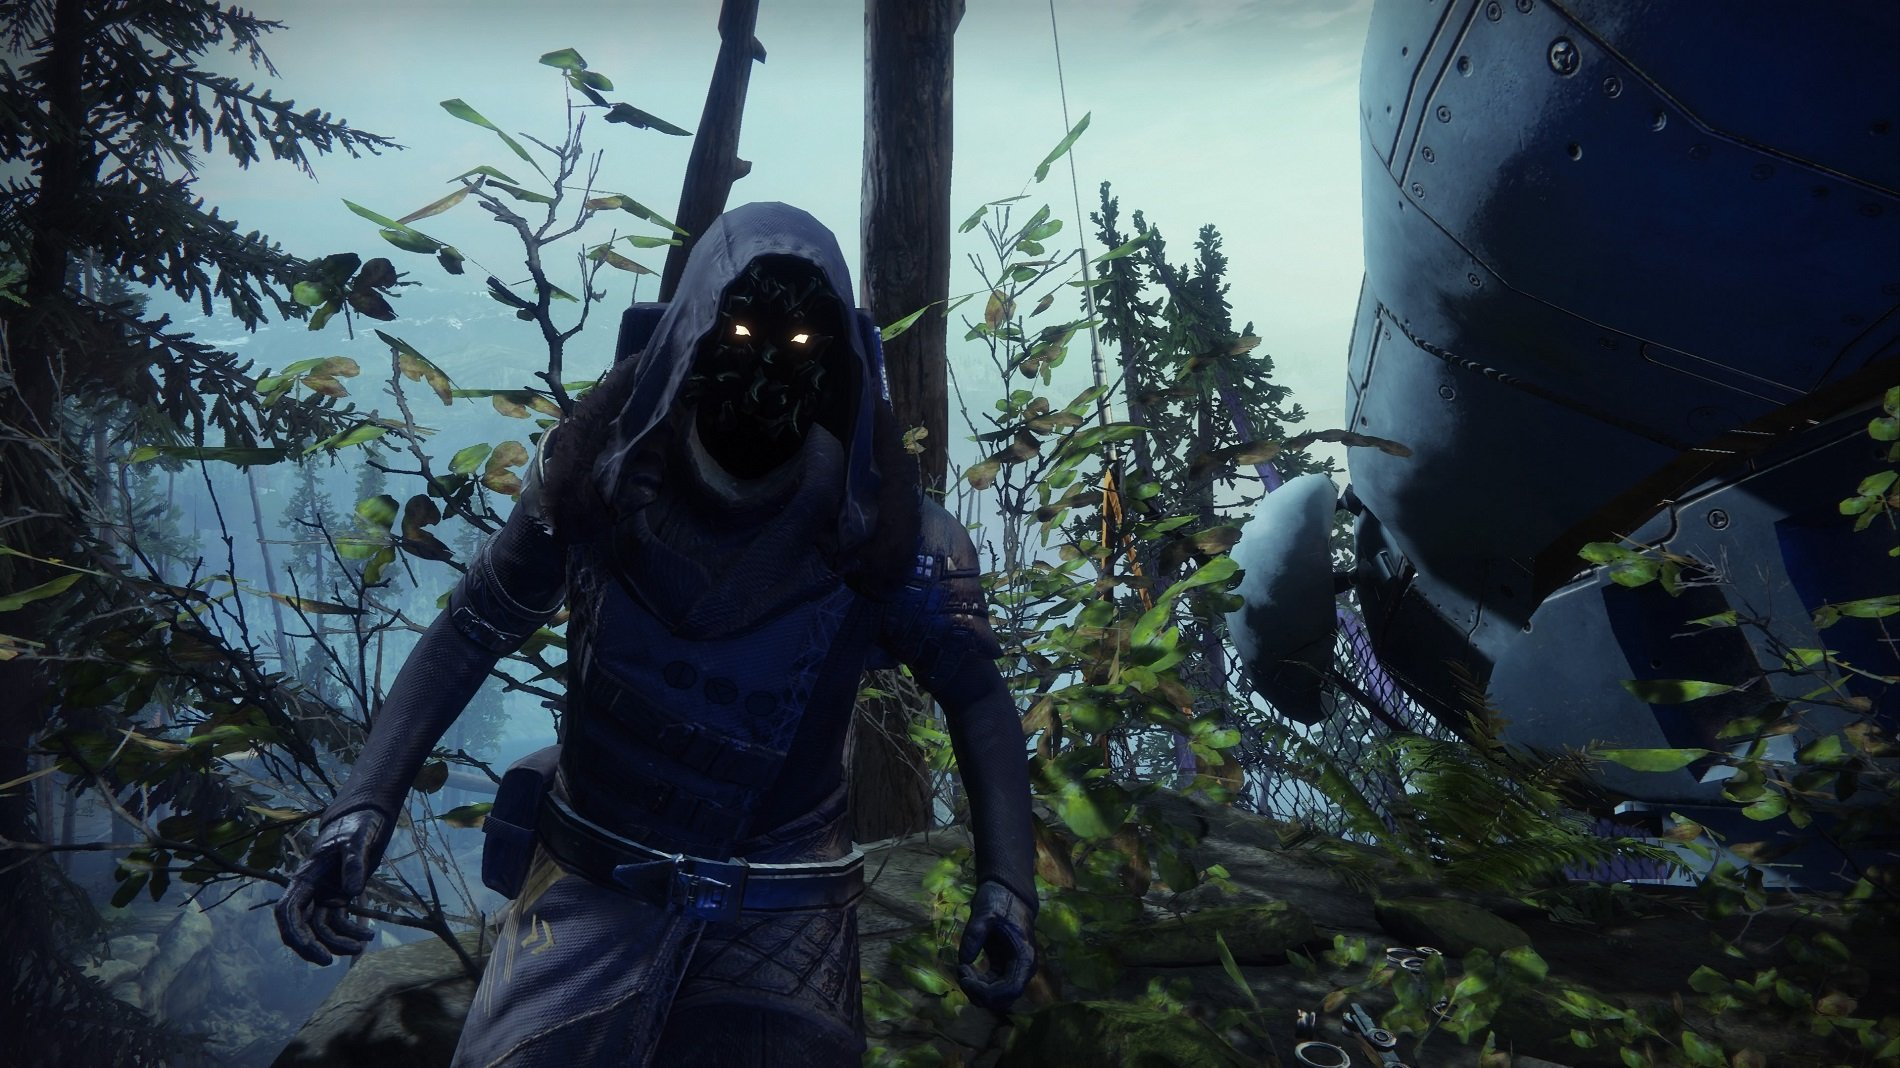 Where to find Xur in Destiny 2 - December 20, 2019